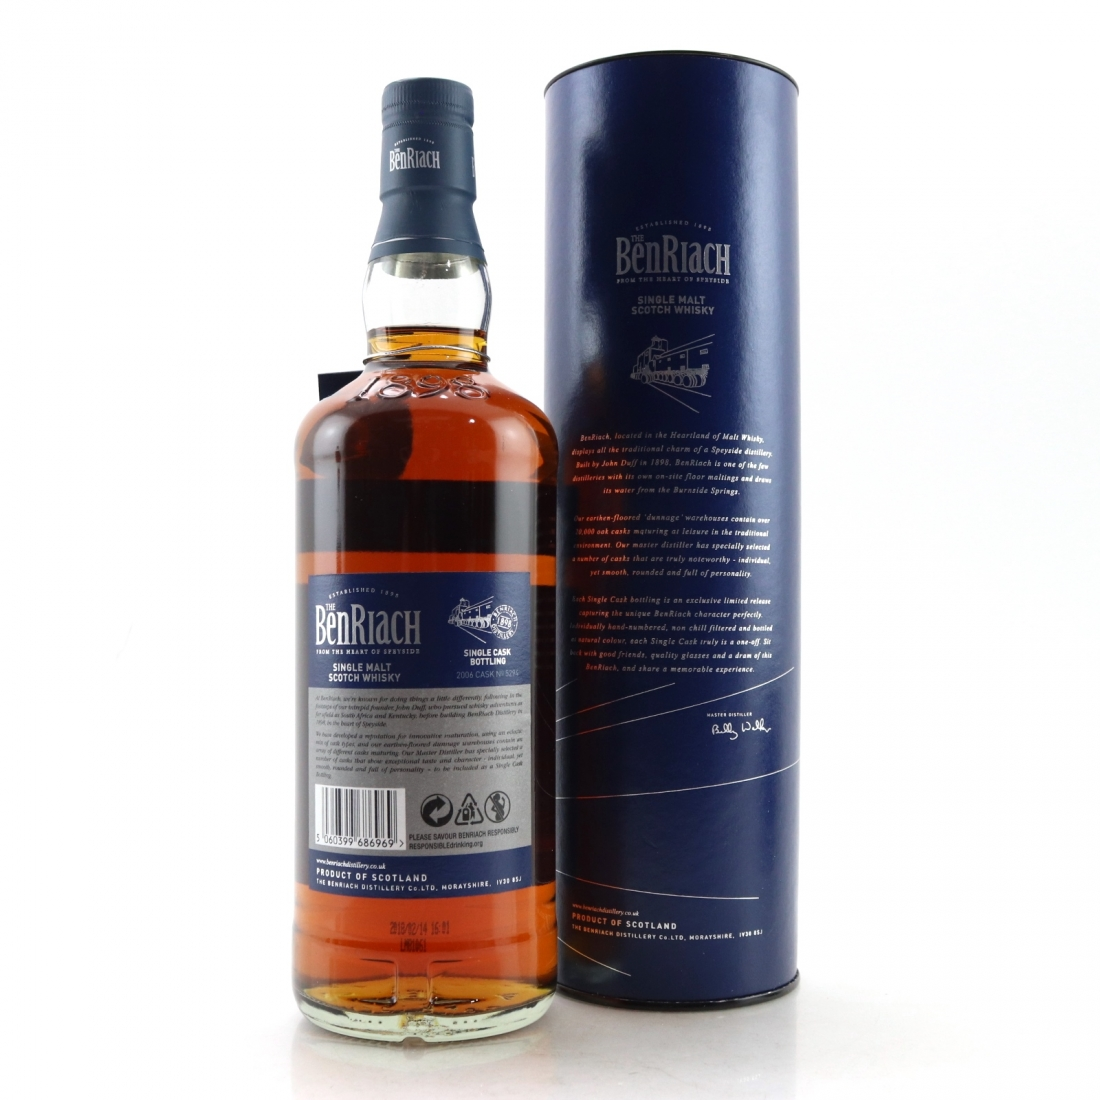 Benriach 2006 Single Cask 11 Year Old / PX Puncheon